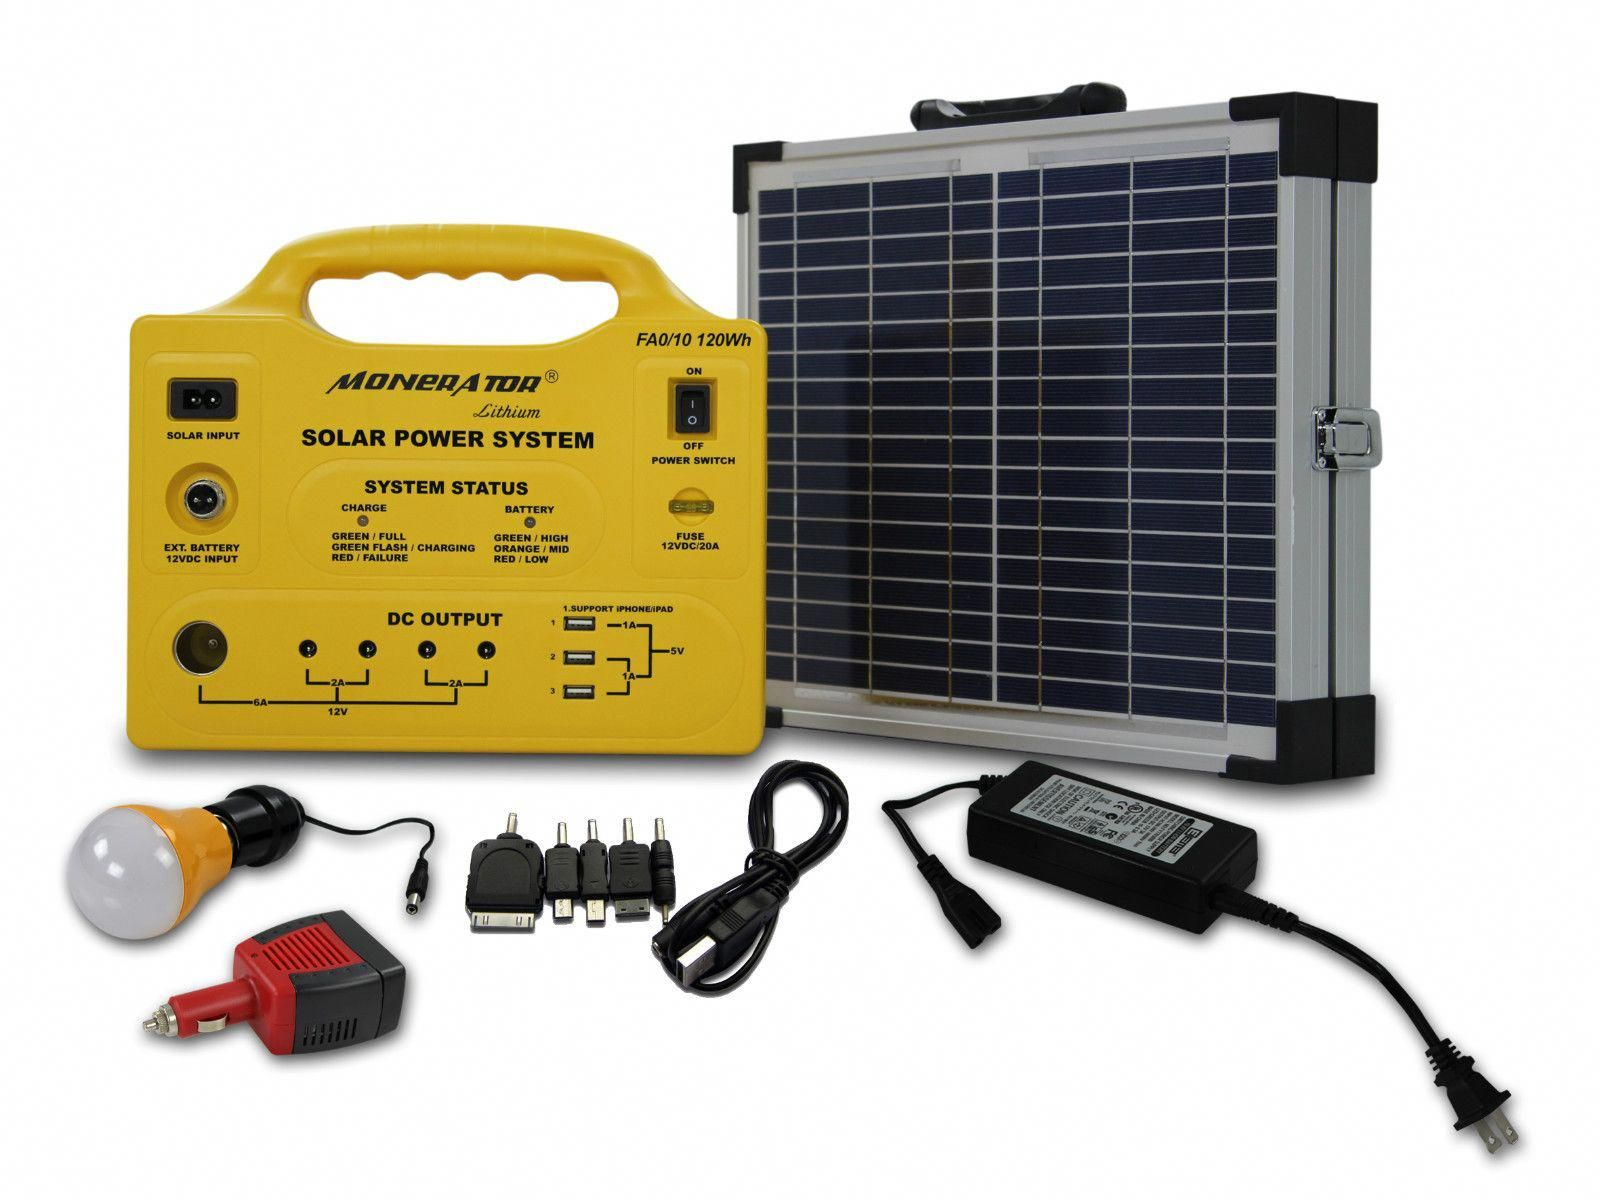 Solar Power Generator Portable Picclick Com Solarpanels Solarenergy Solarpower Solargenerator Solarpanelkits So Solar Power Solar Generator Solar Power Source